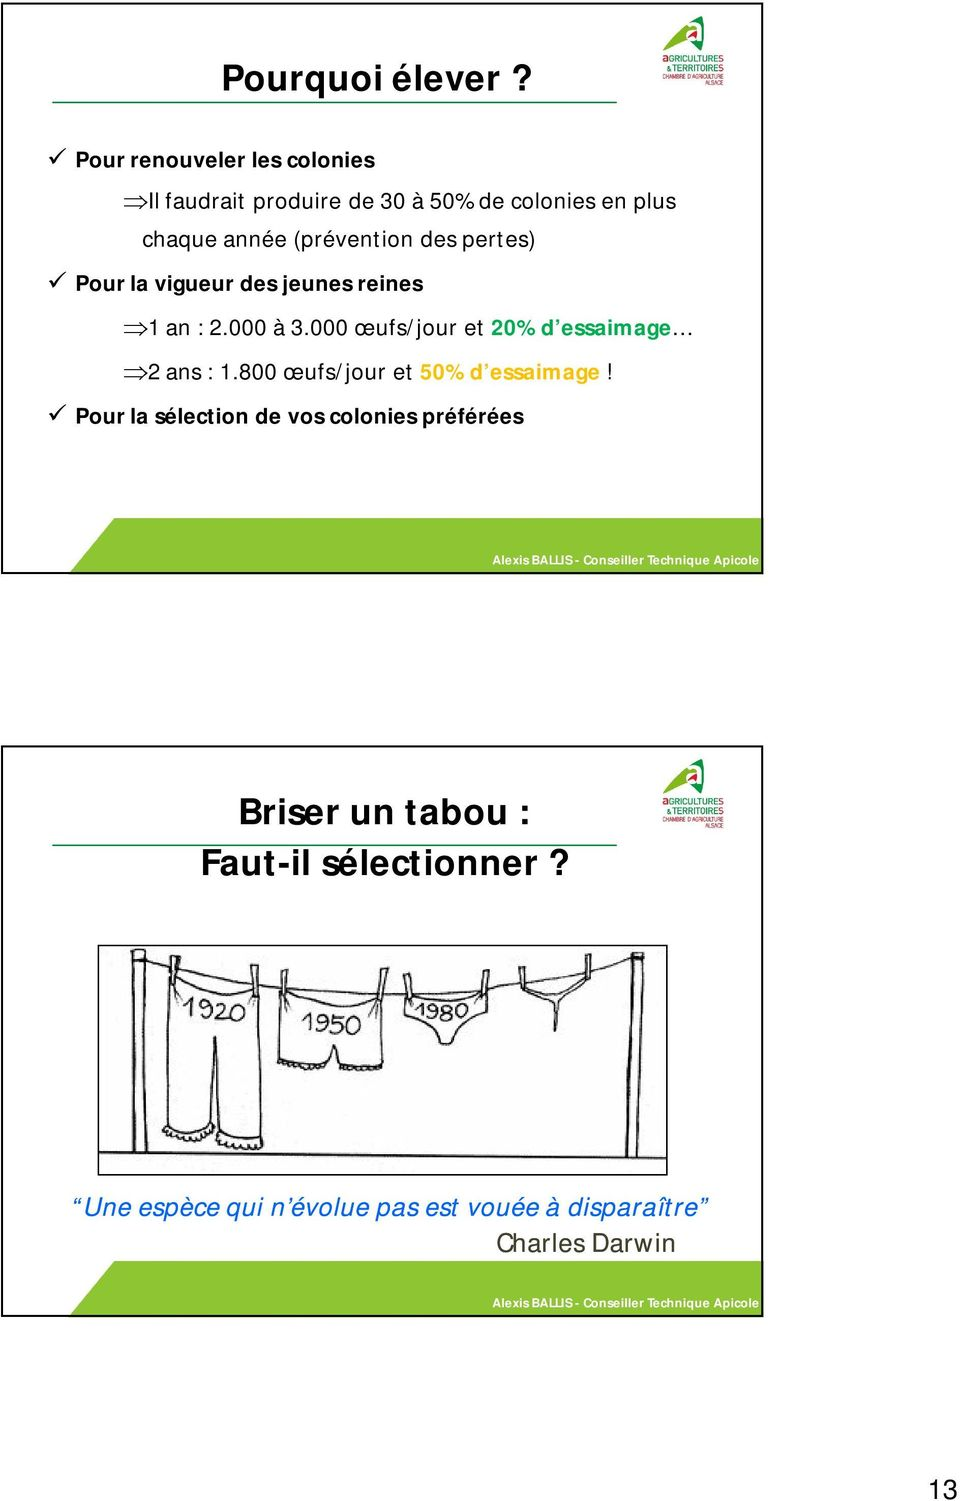 Multiplication des colonies alexis ballis conseiller for Chambre agriculture 13